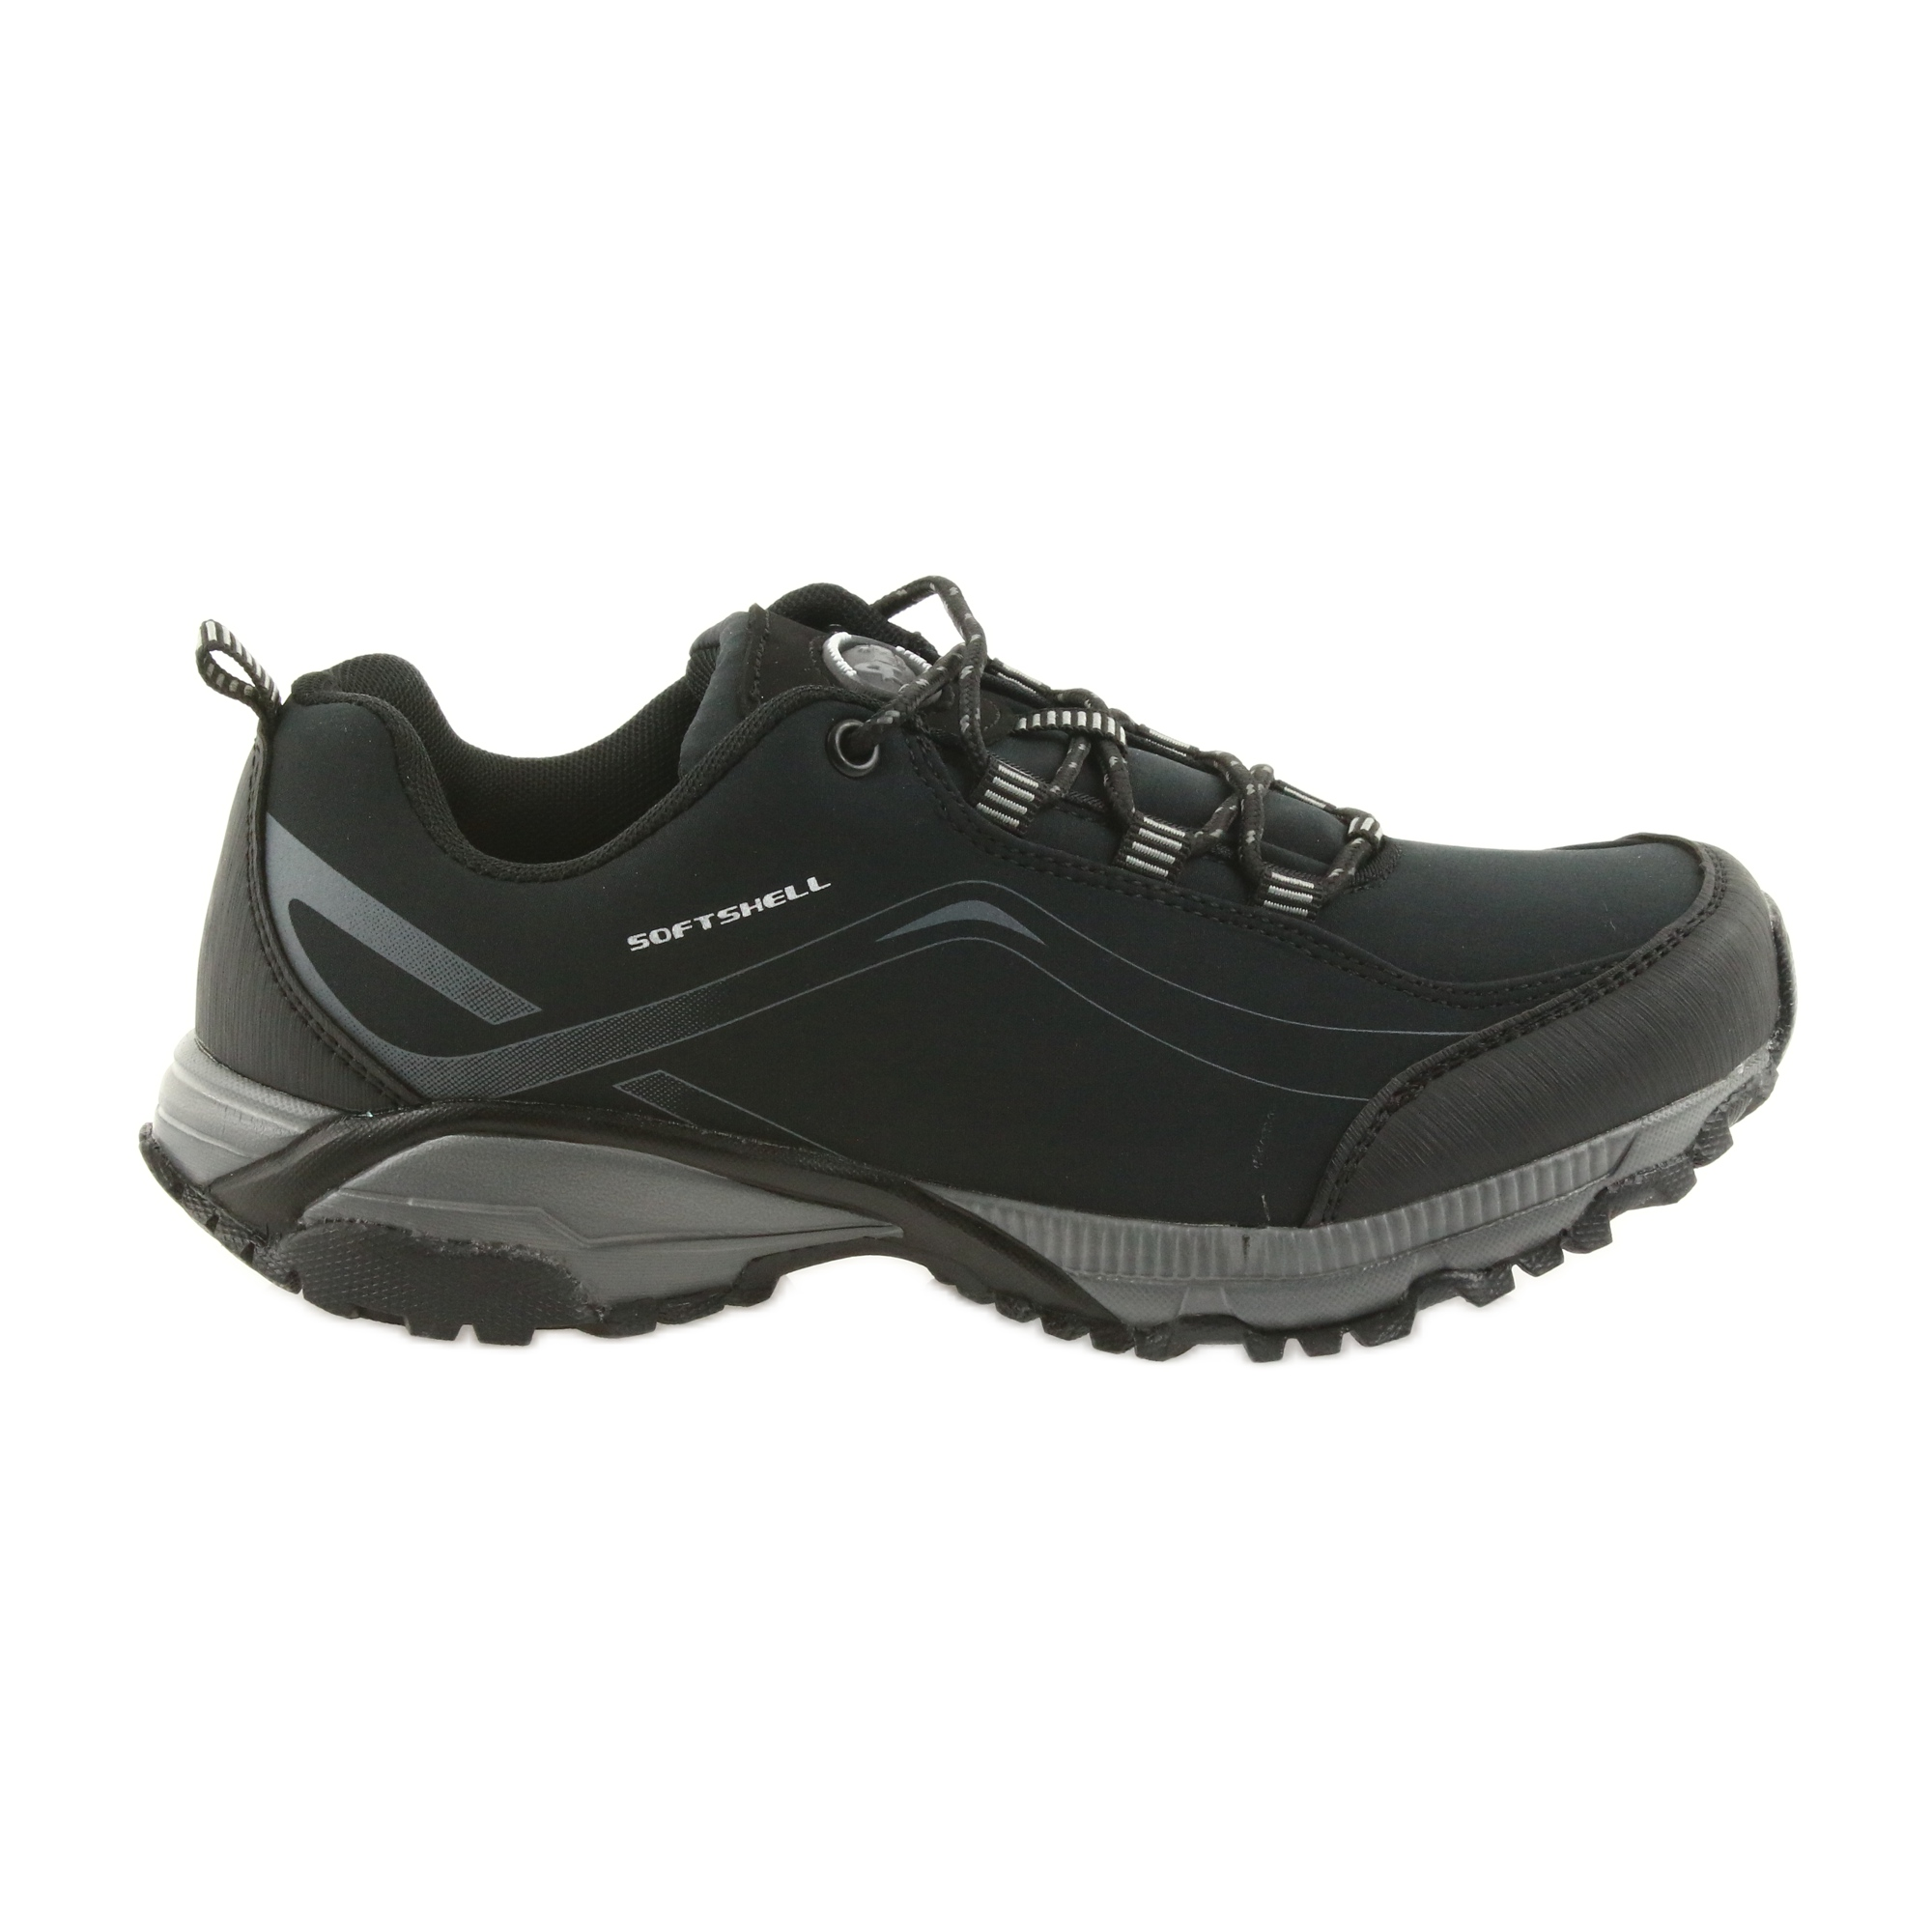 American Club chaussures De Sport American Imperméable softhell